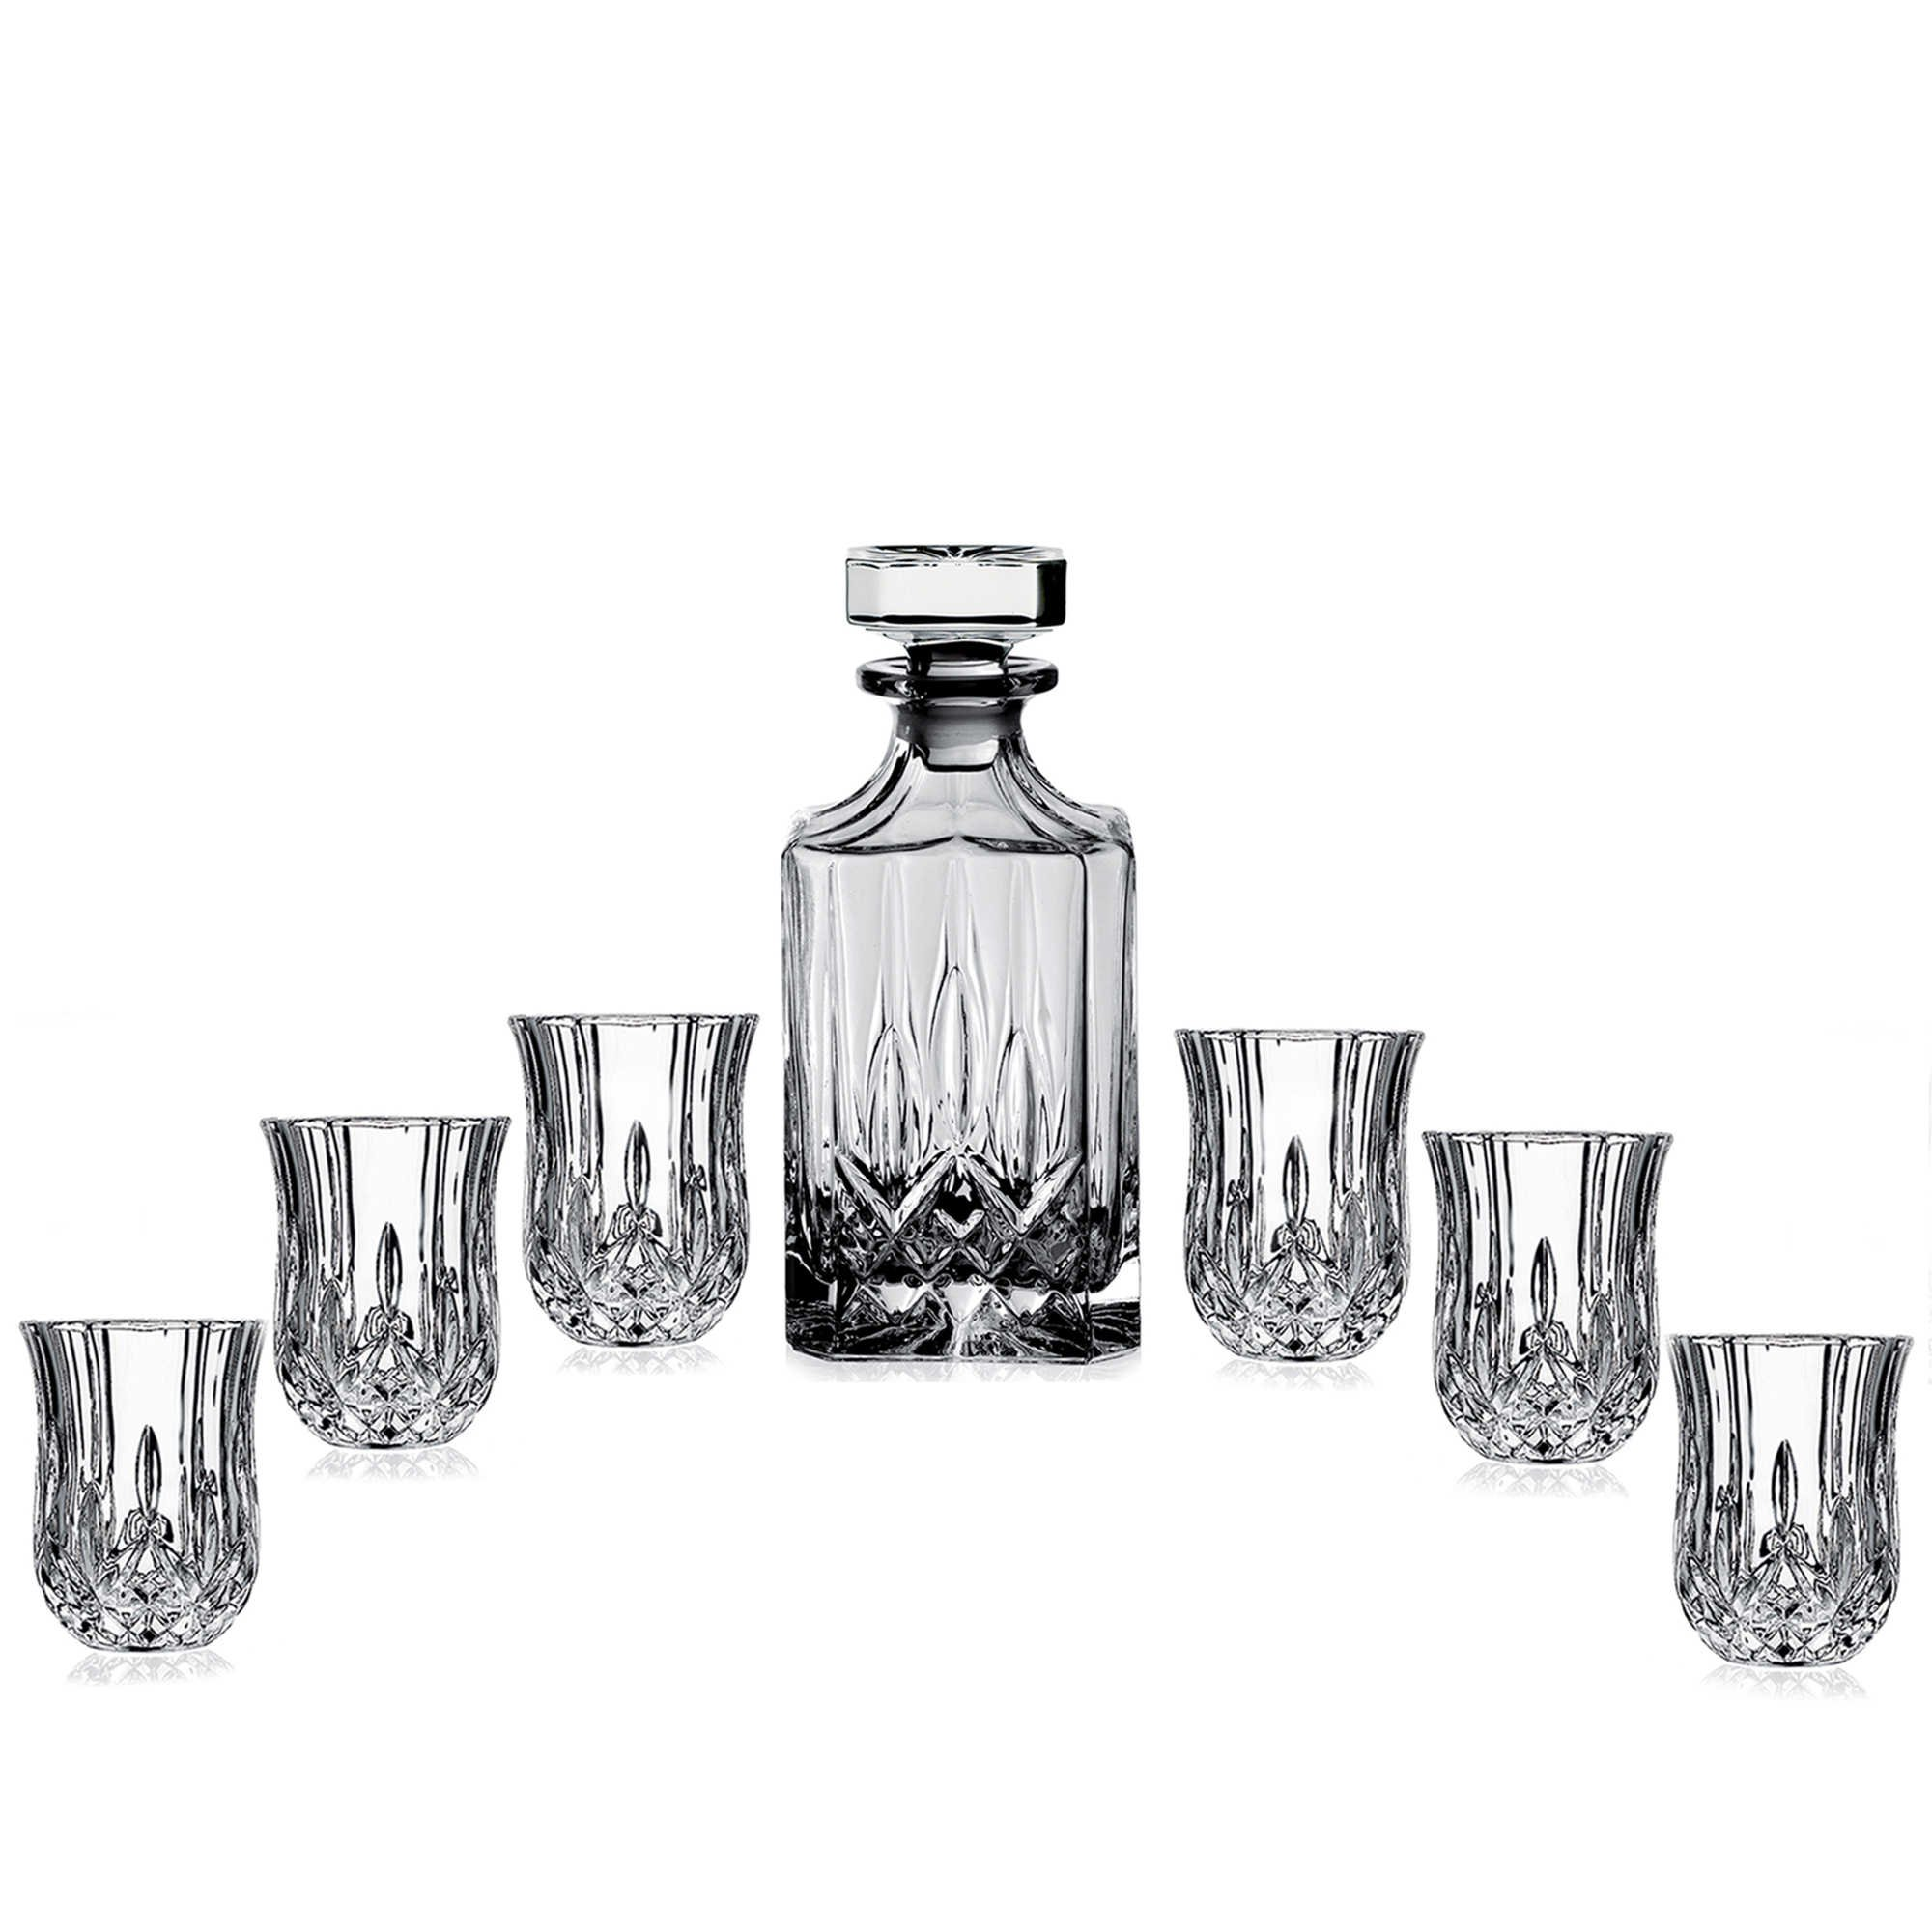 elegant crystal liquor whiskey and wine decanter bar set. Black Bedroom Furniture Sets. Home Design Ideas